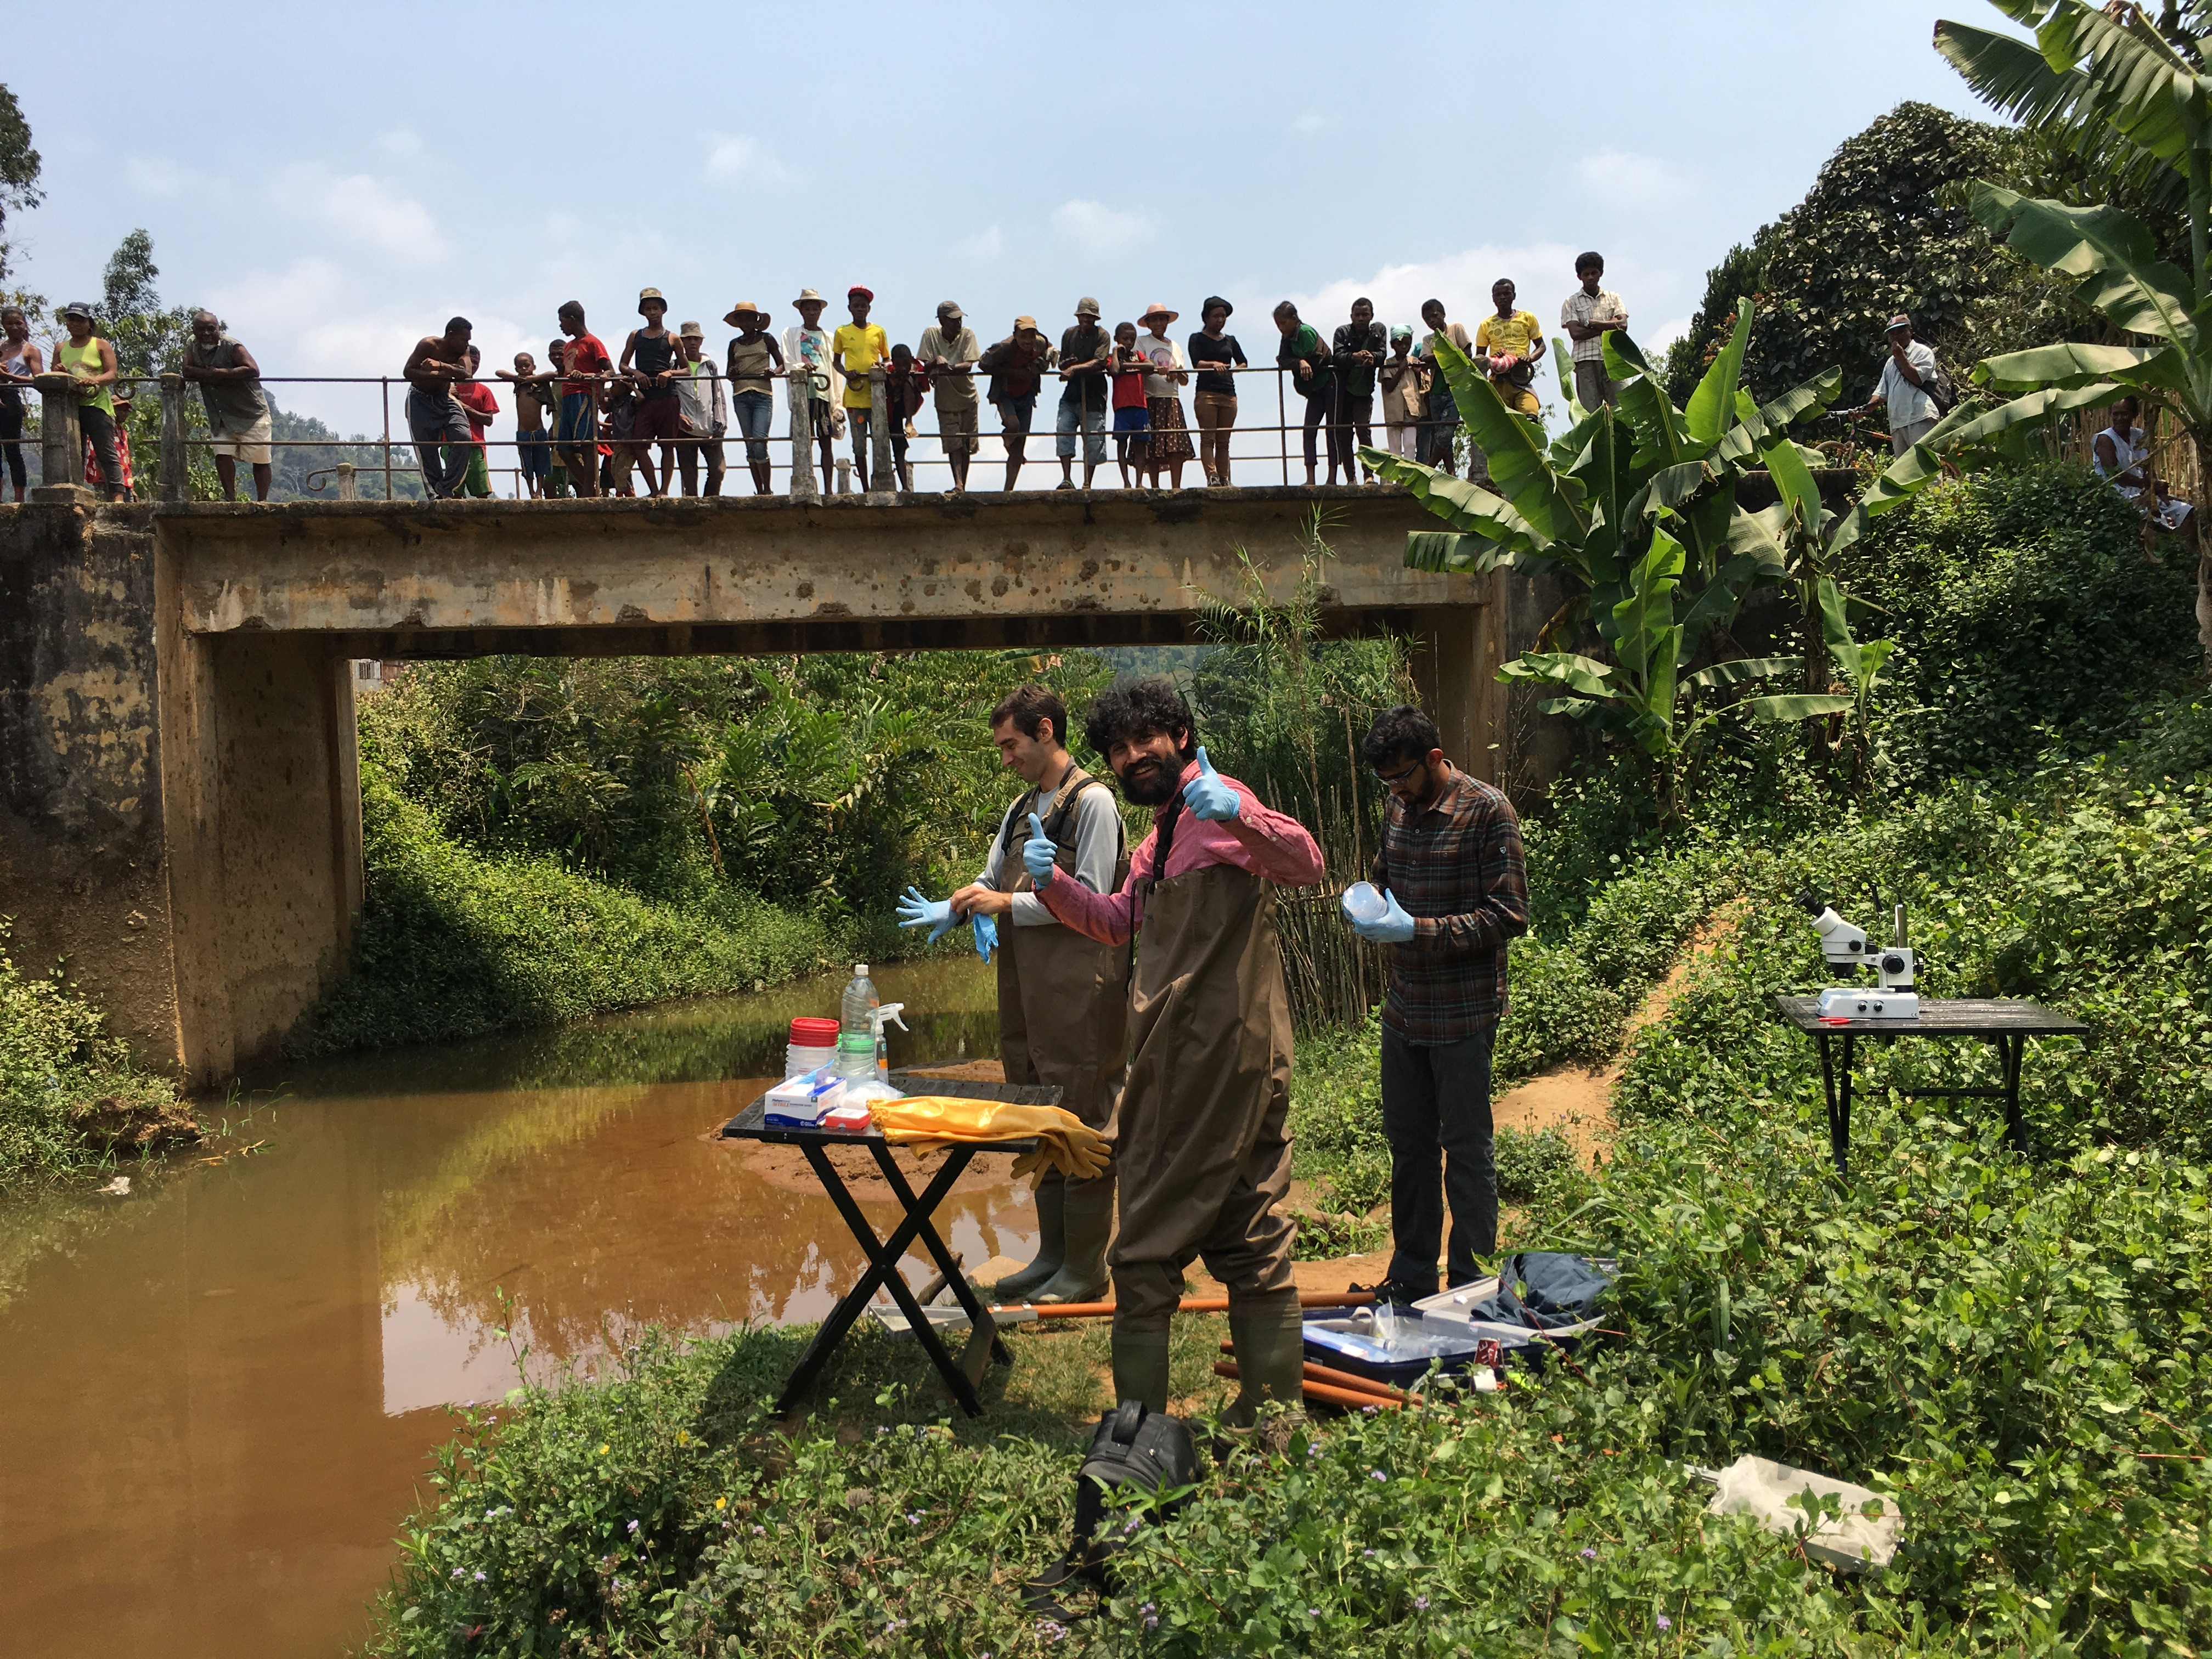 Stanford scholars Manu Prakash and Deepak Krishnamurthy with local worker Andres (no last name given) in a river in Madagascar gathering larvae that cause schistosomiasis while local people look down on them from a bridge